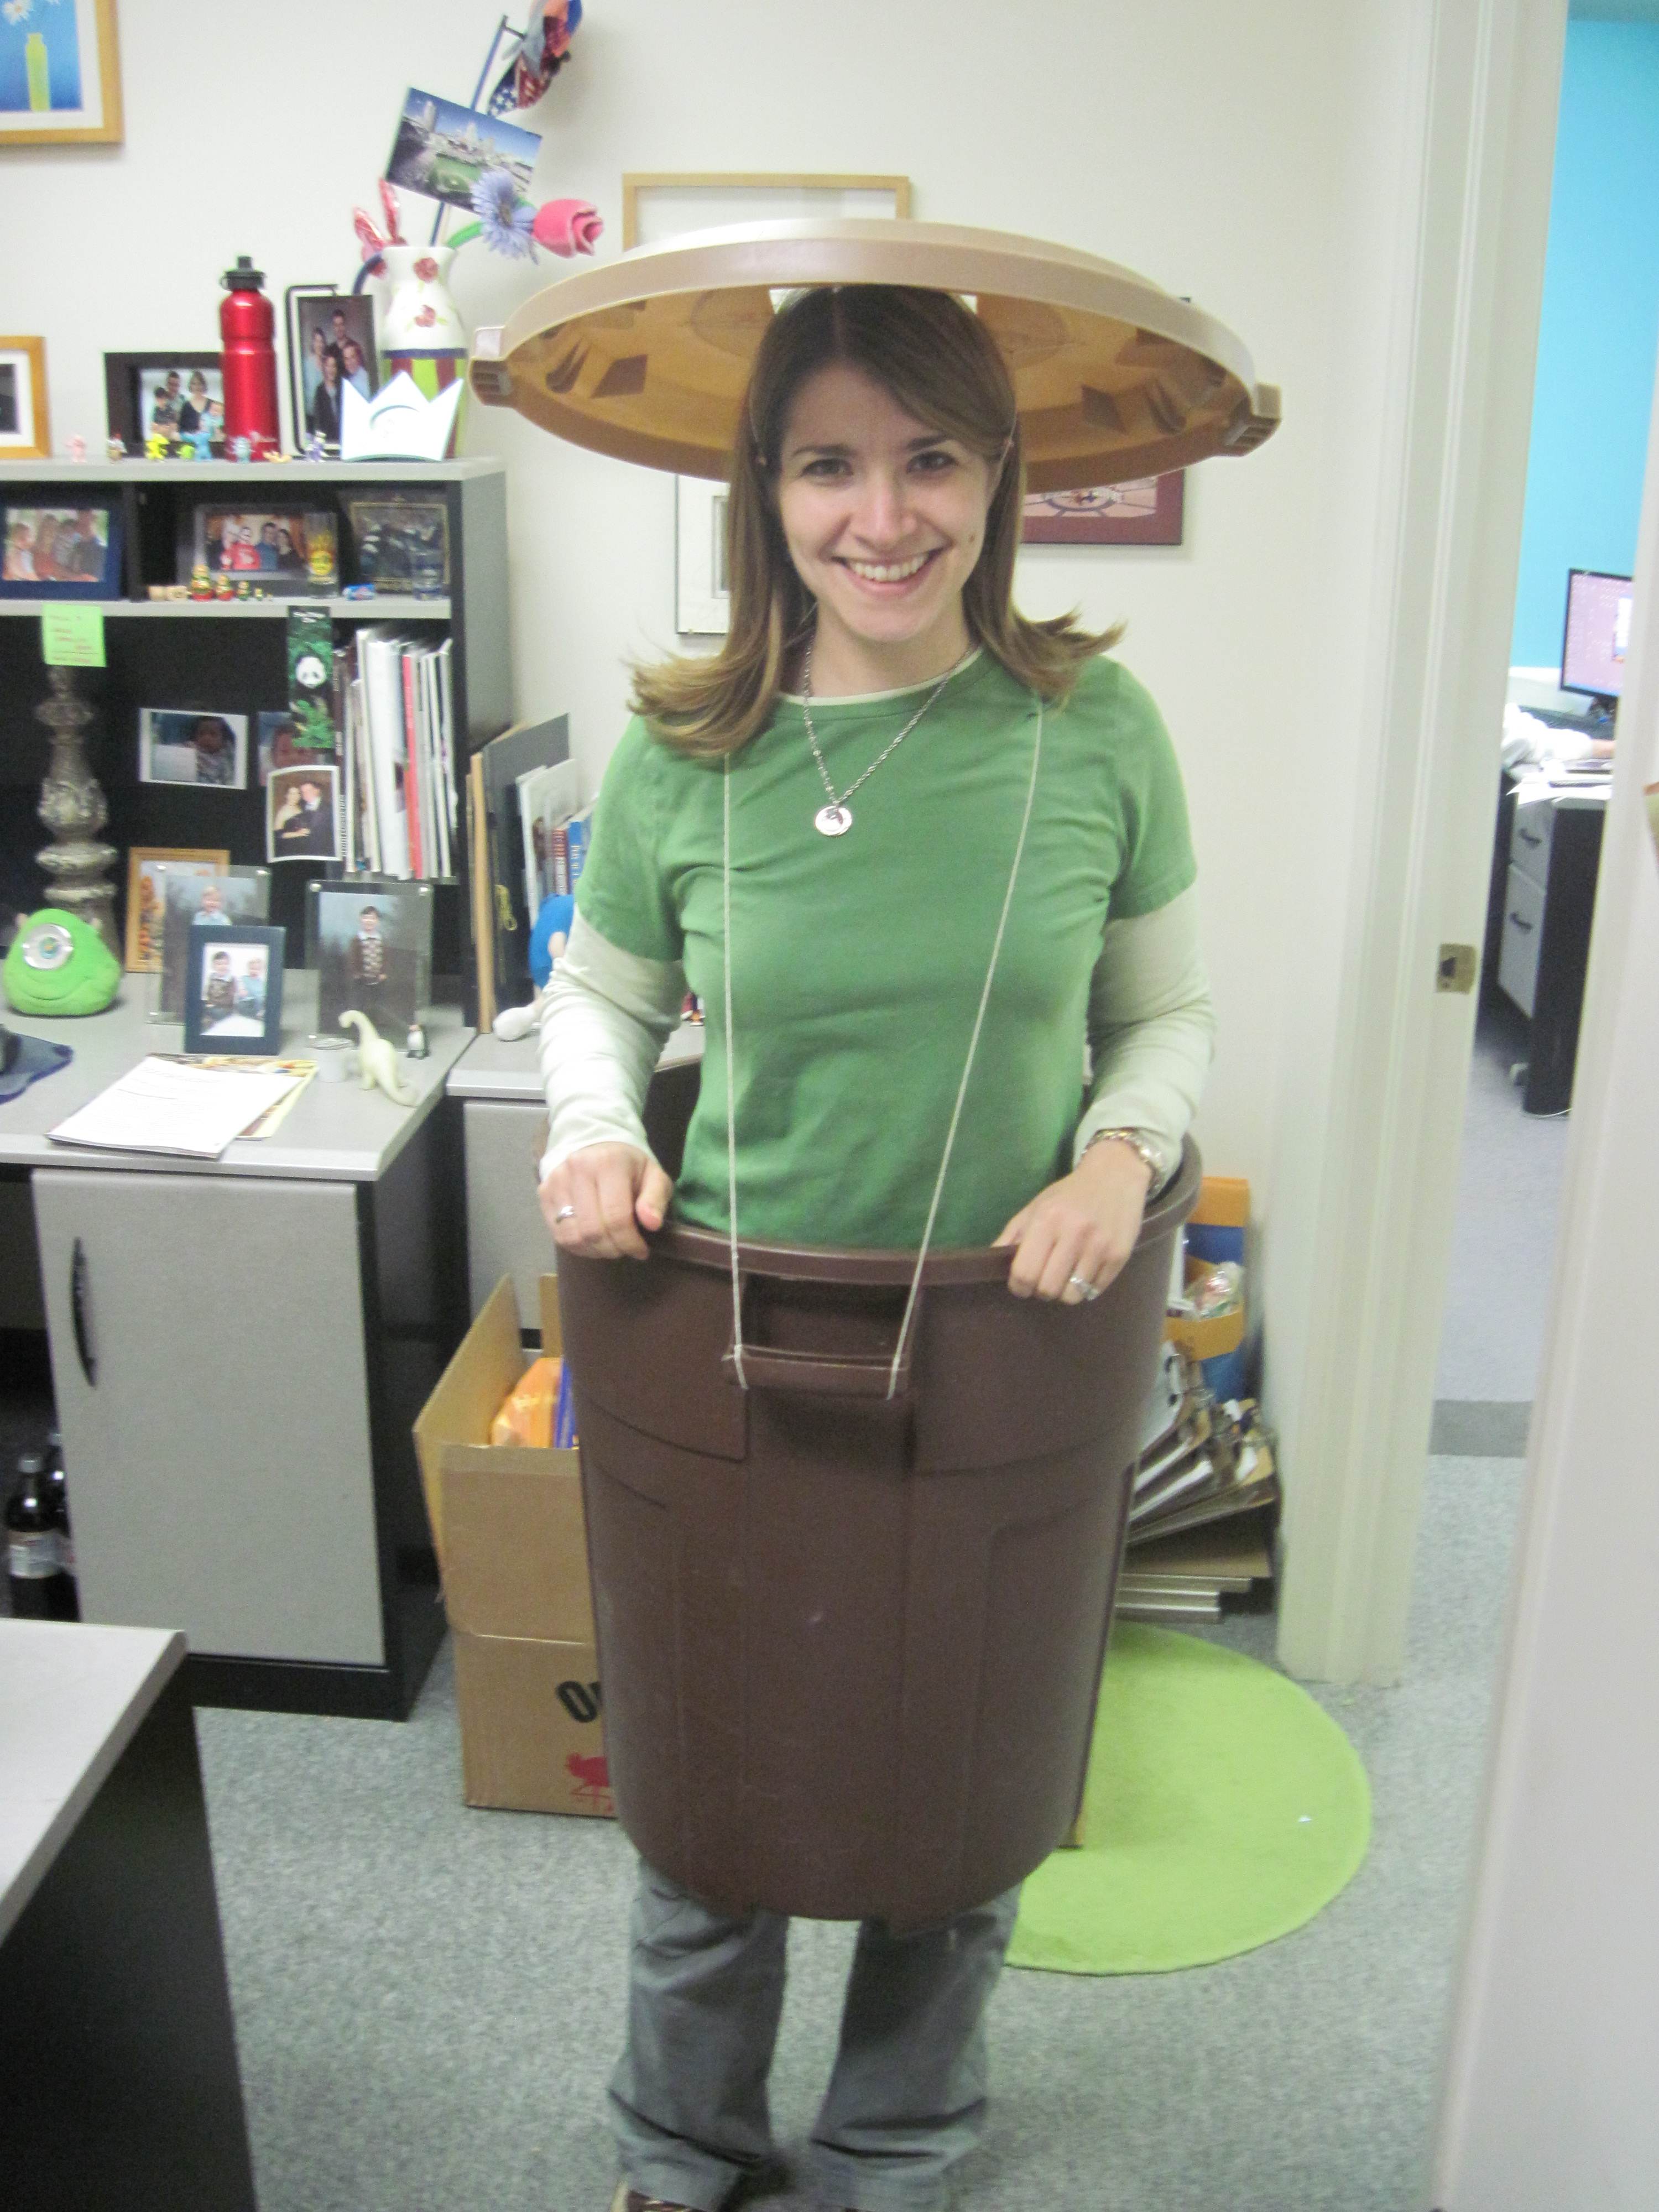 Halloween Party Ideas: Do It Yourself Costumes - Daily Party Dish